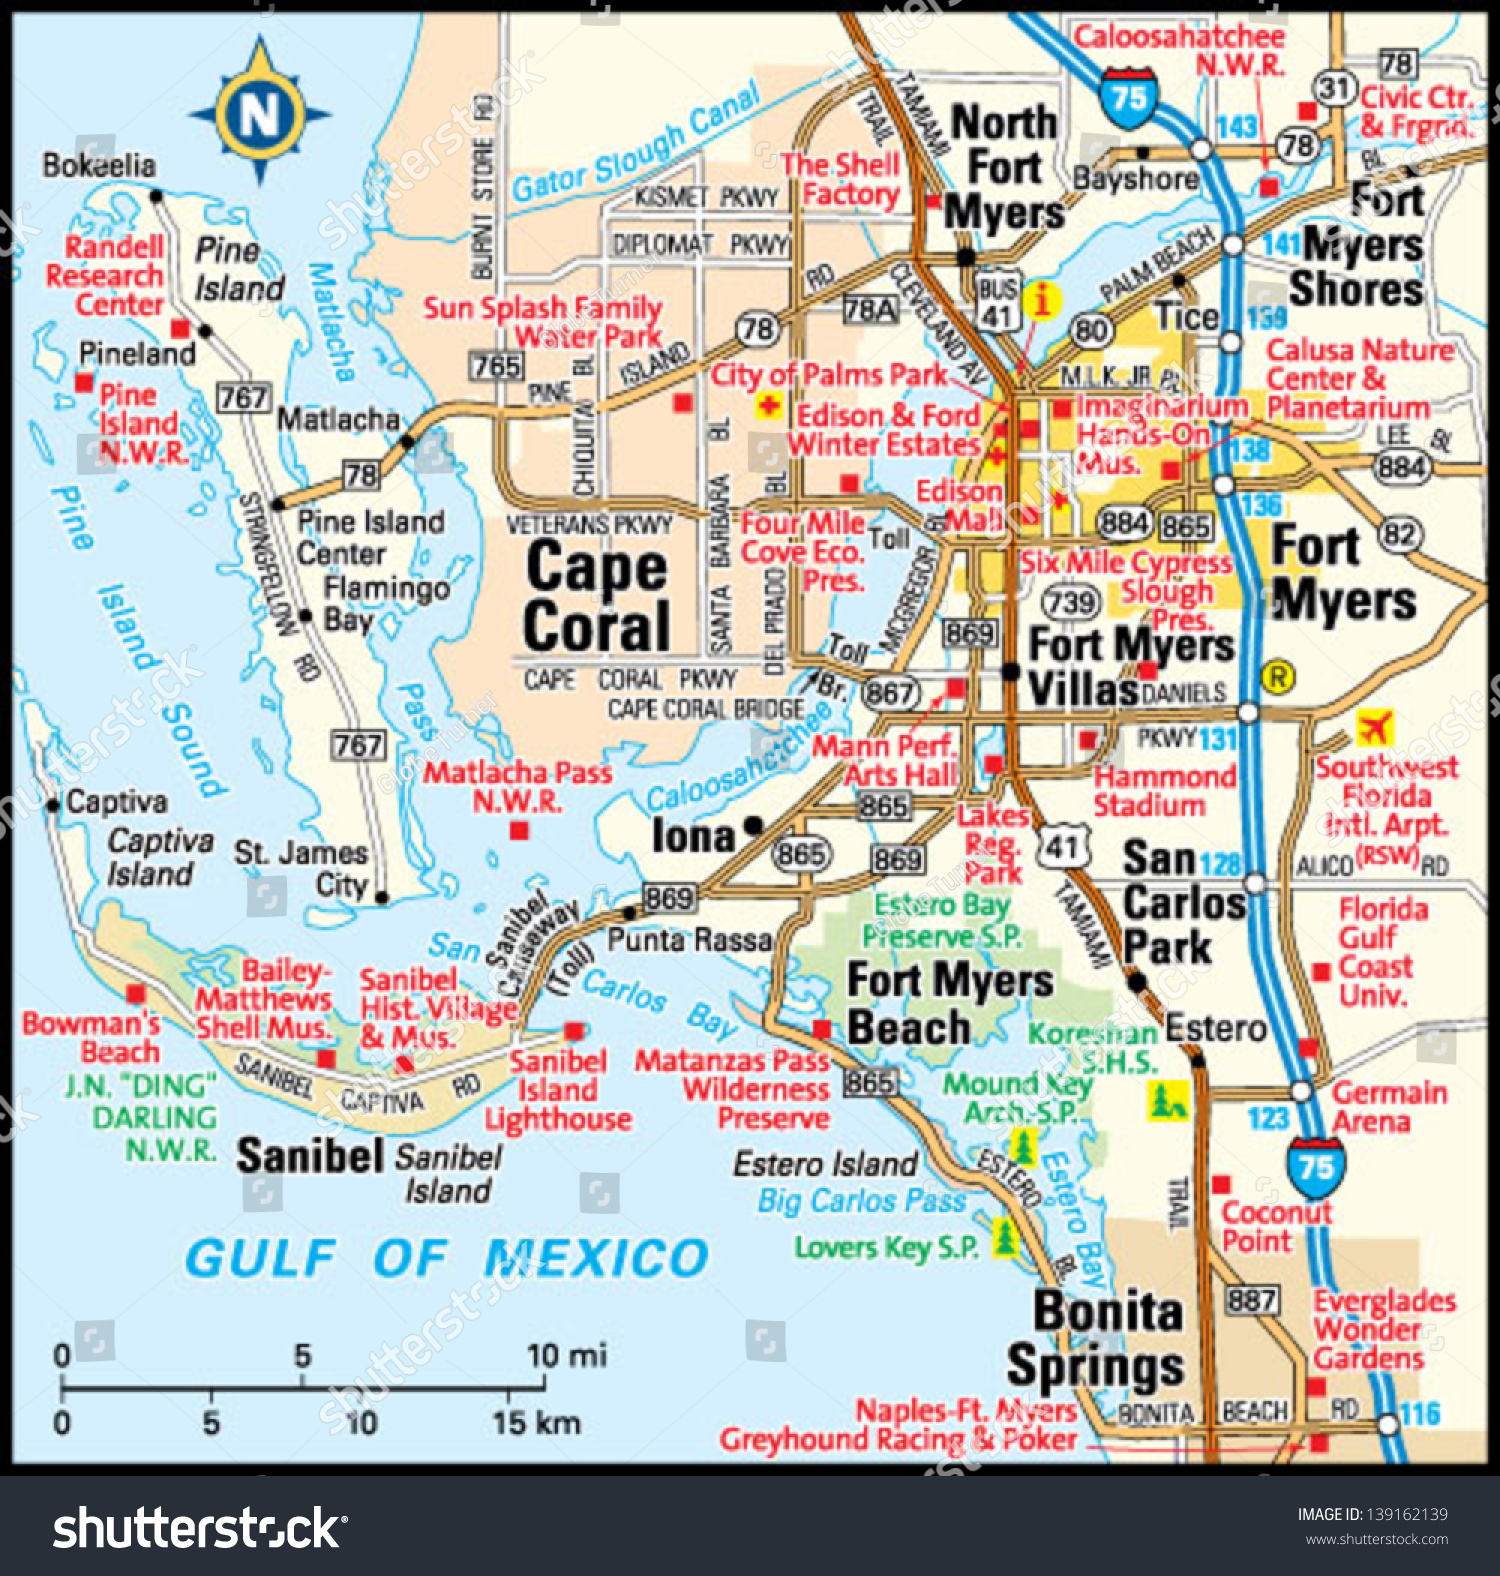 Fort Myers Florida Area Map Image Vectorielle De Stock (Libre De - Where Is Fort Myers Florida On A Map